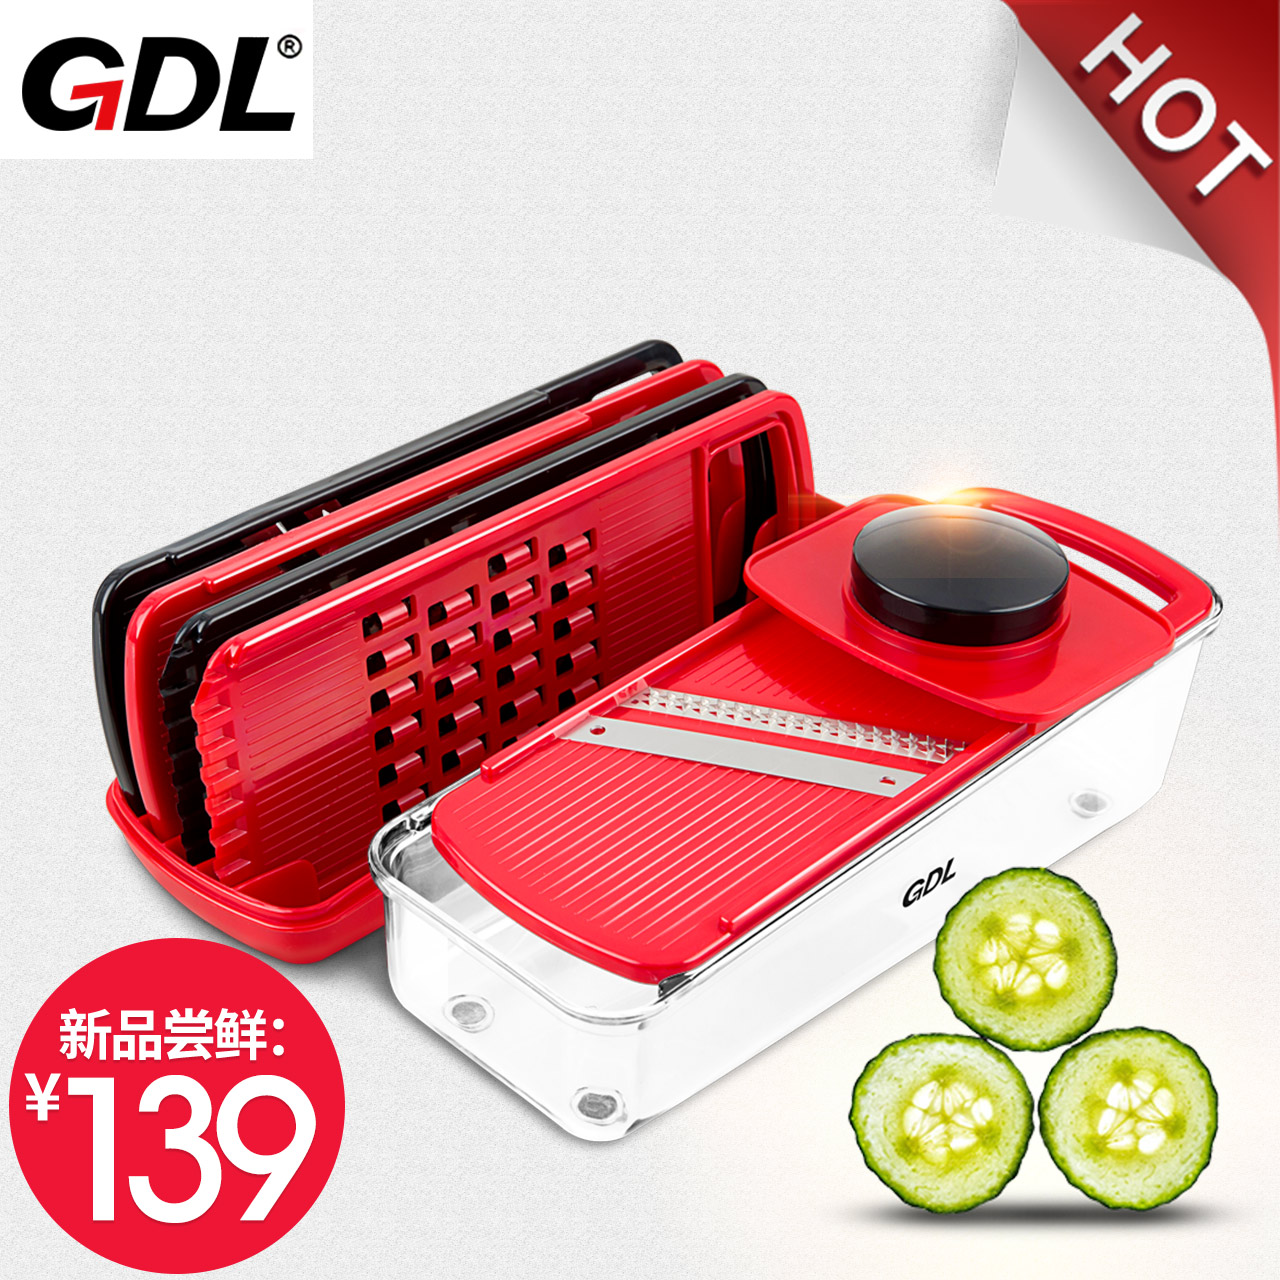 Gdl multifunction shredder grater kitchen chopping artifact microtome rub strip mill rong cut potato potatoes wire Household